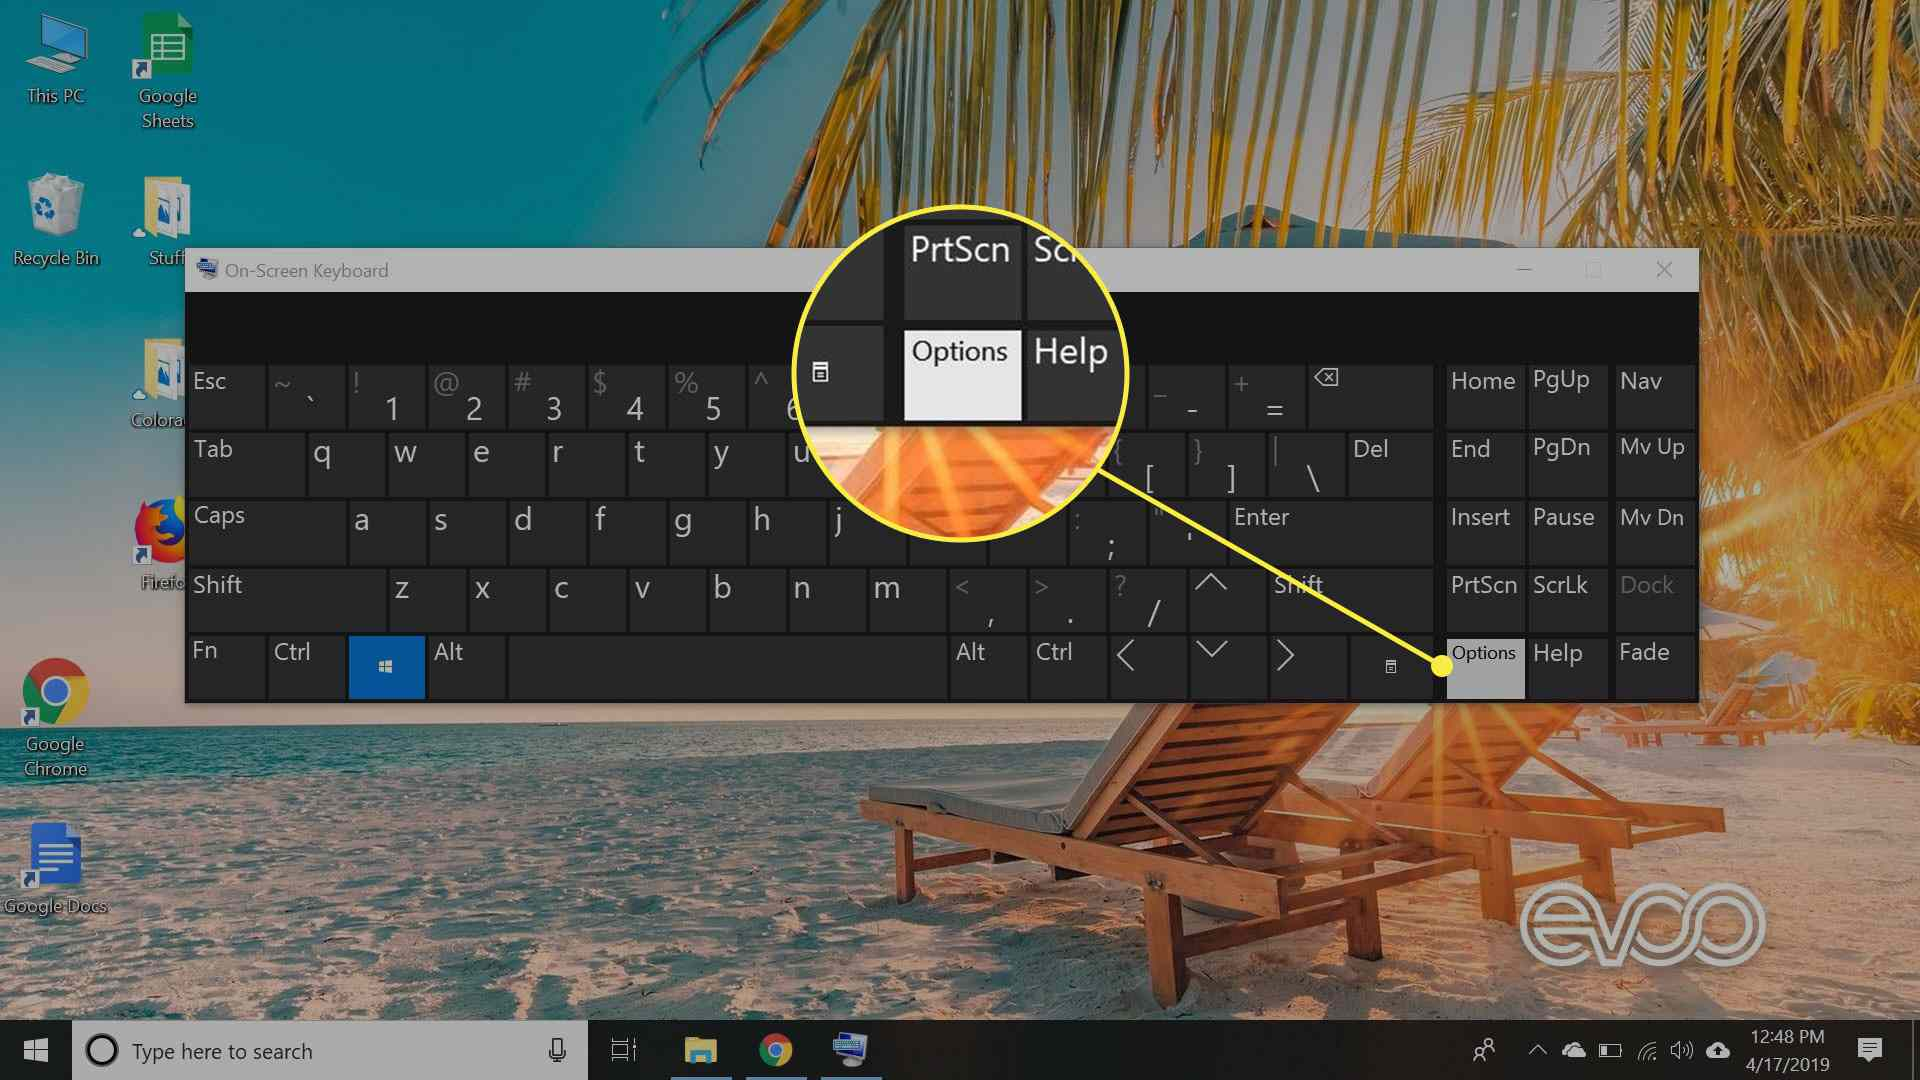 A screenshot of Windows 10's on-screen keyboard with the Options key highlighted